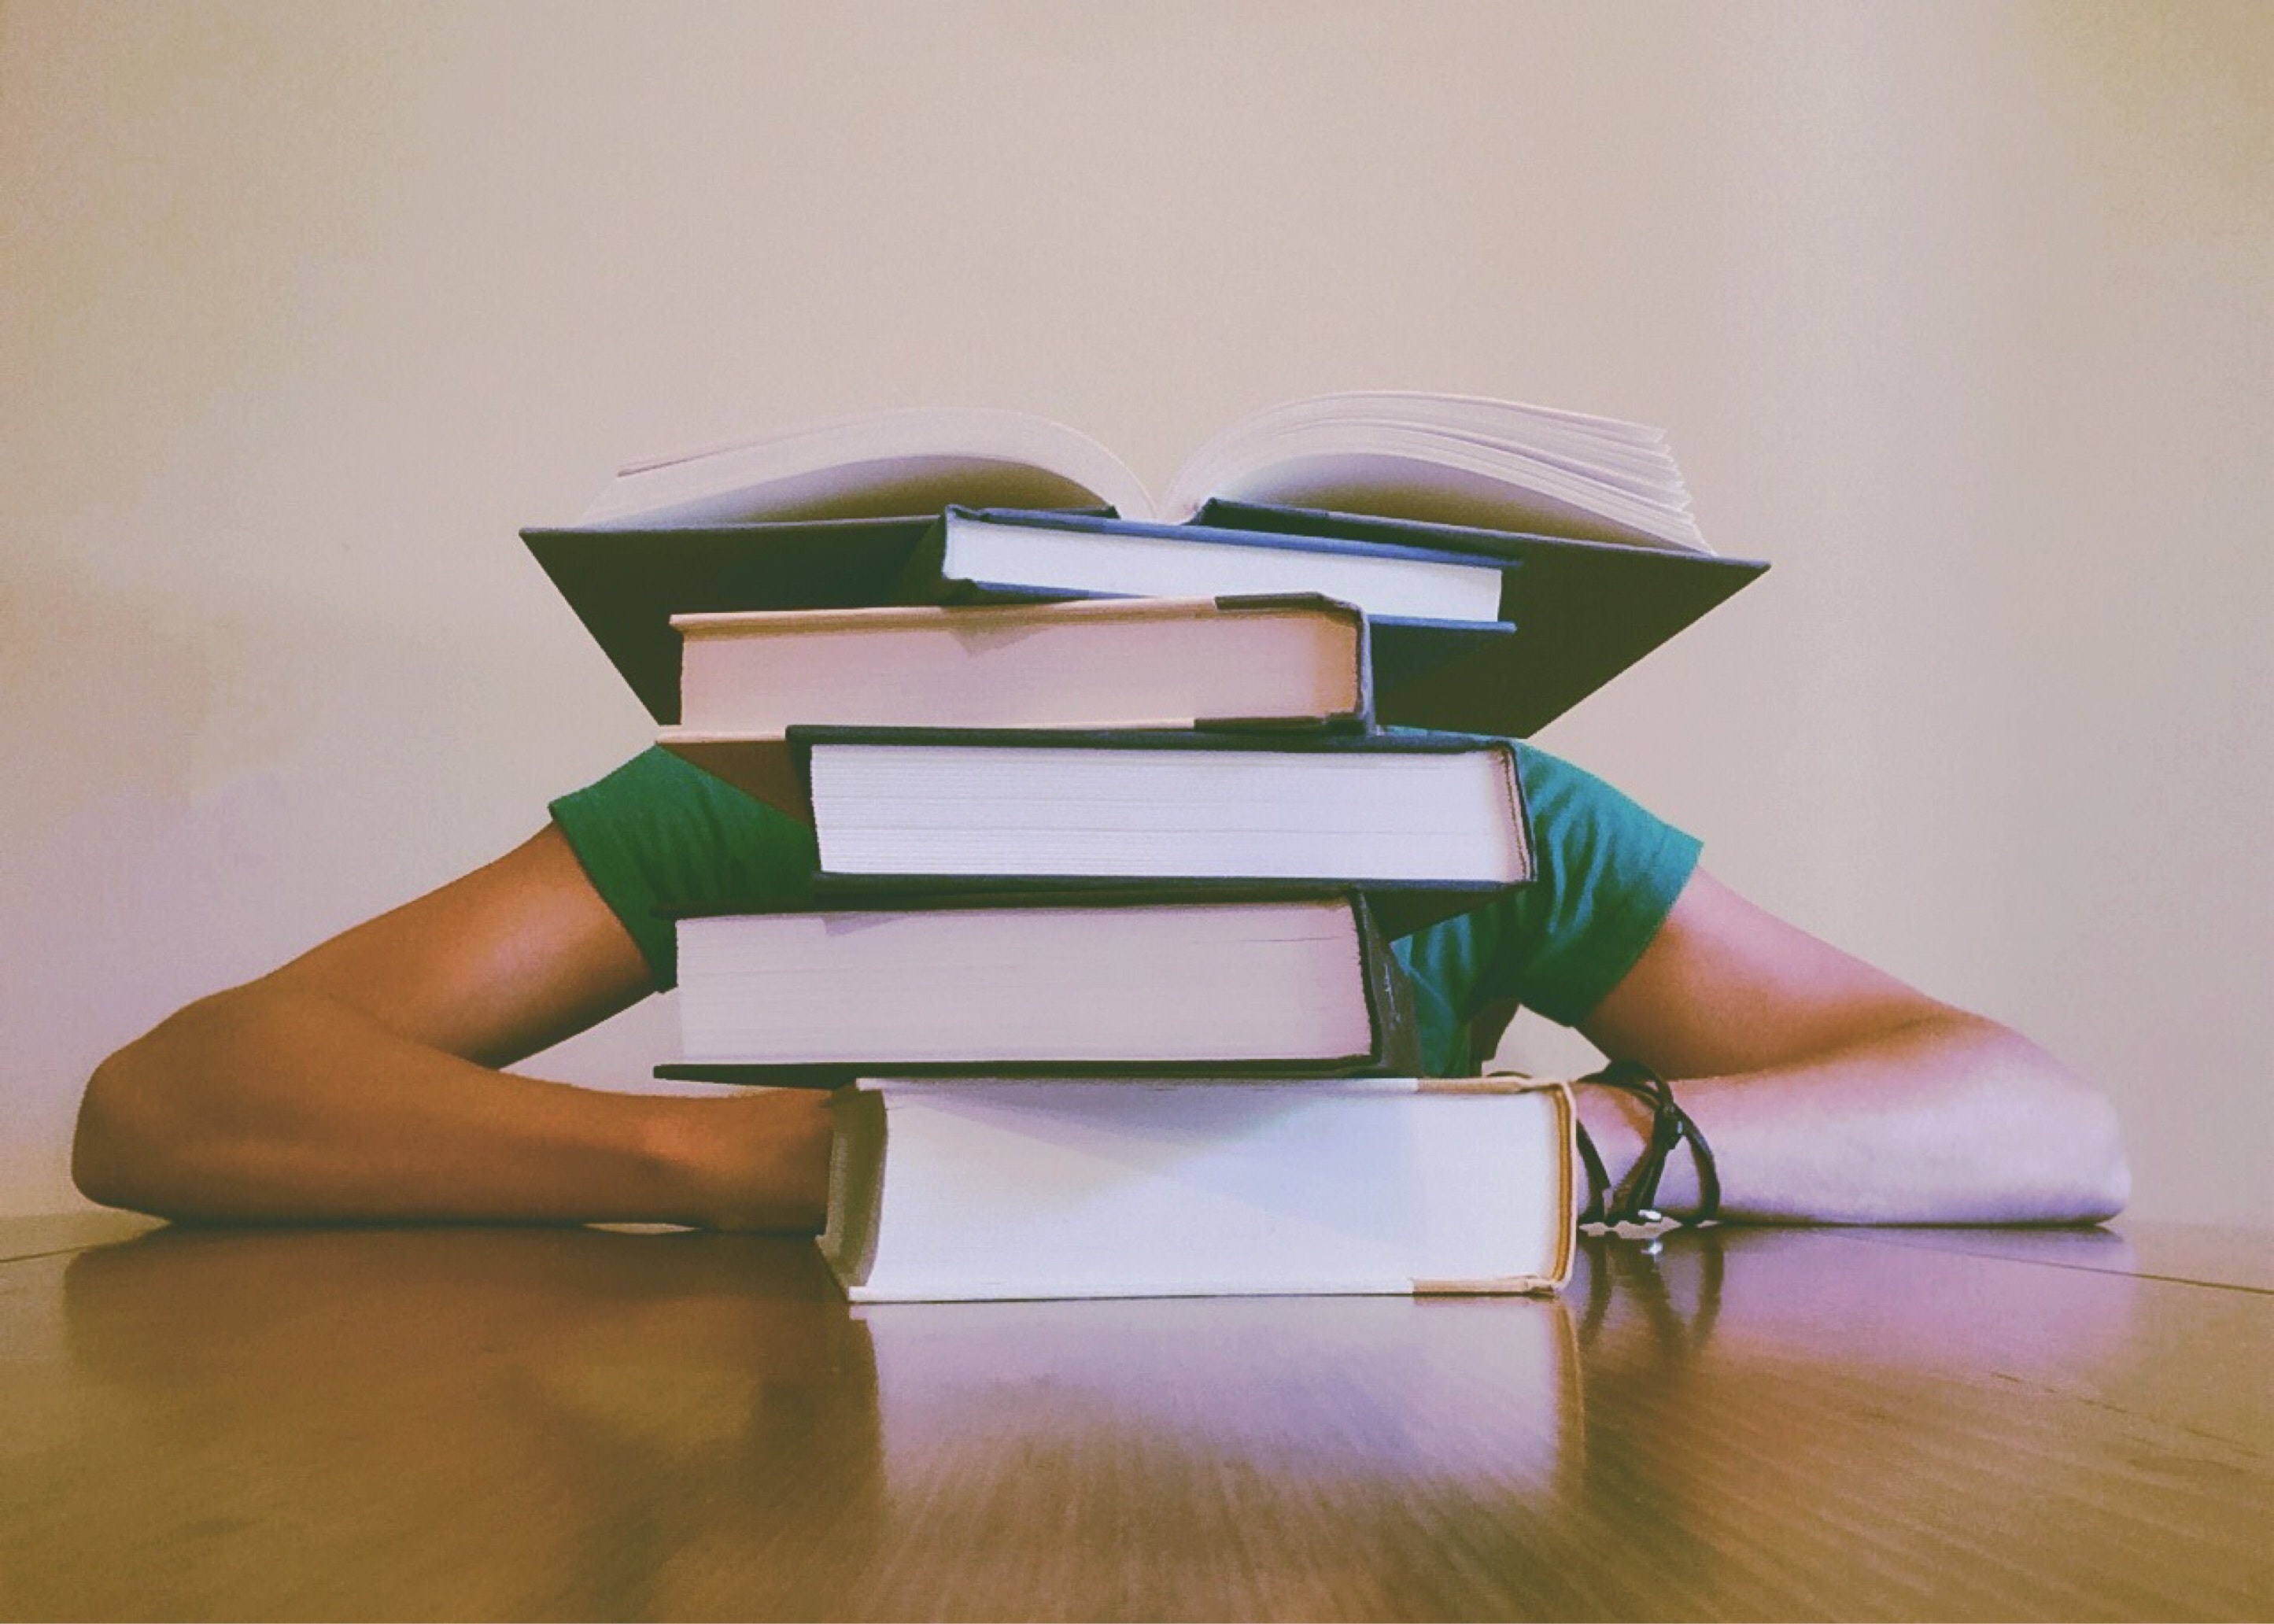 College student behind a pile of books on a desk.